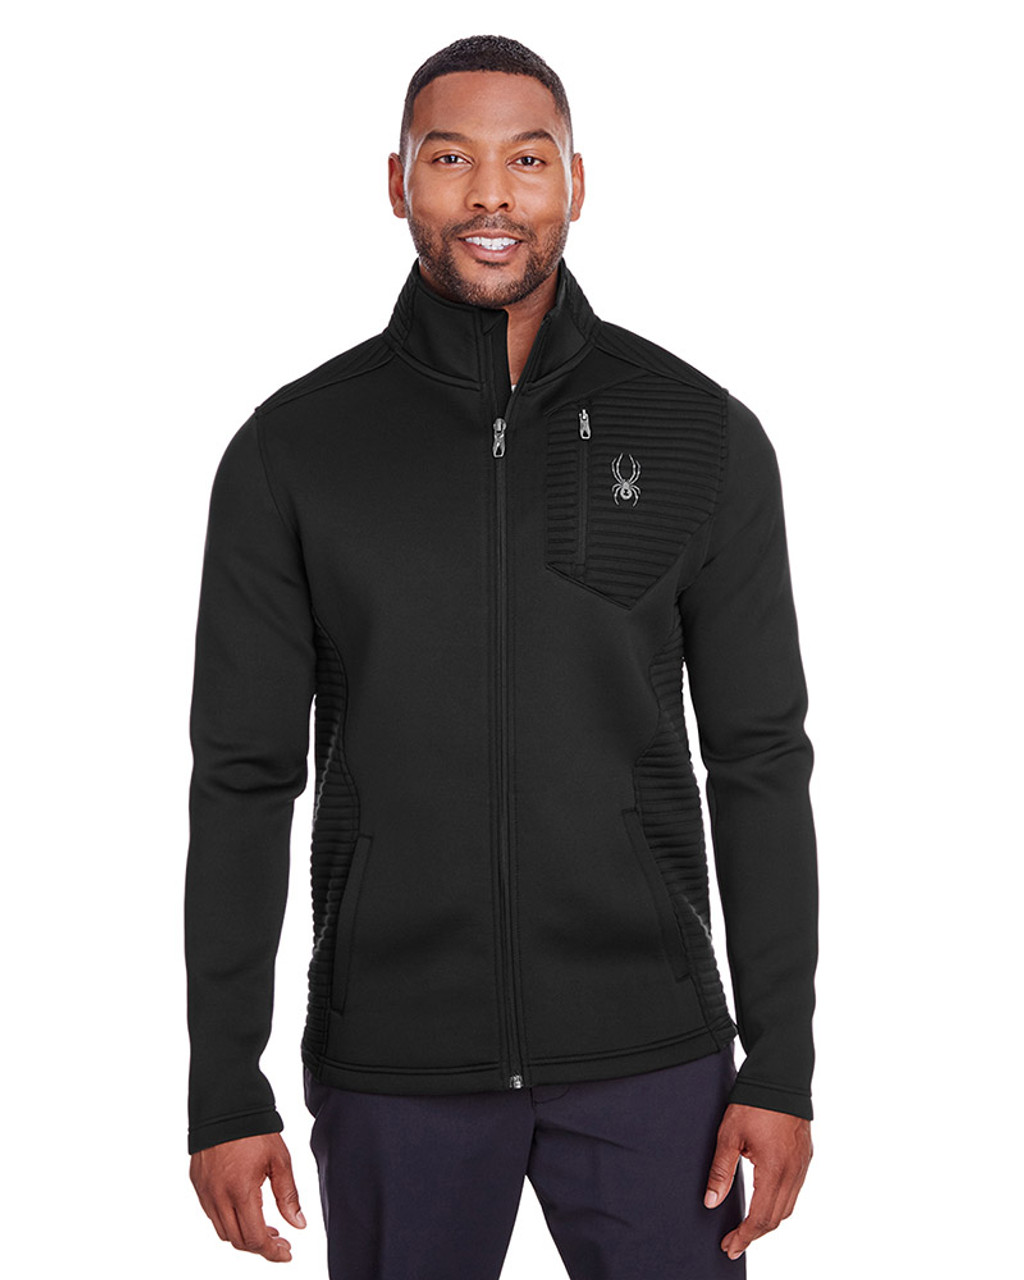 Black - S16539 Spyder Men's Venom Full-Zip Jacket | Blankclothing.ca